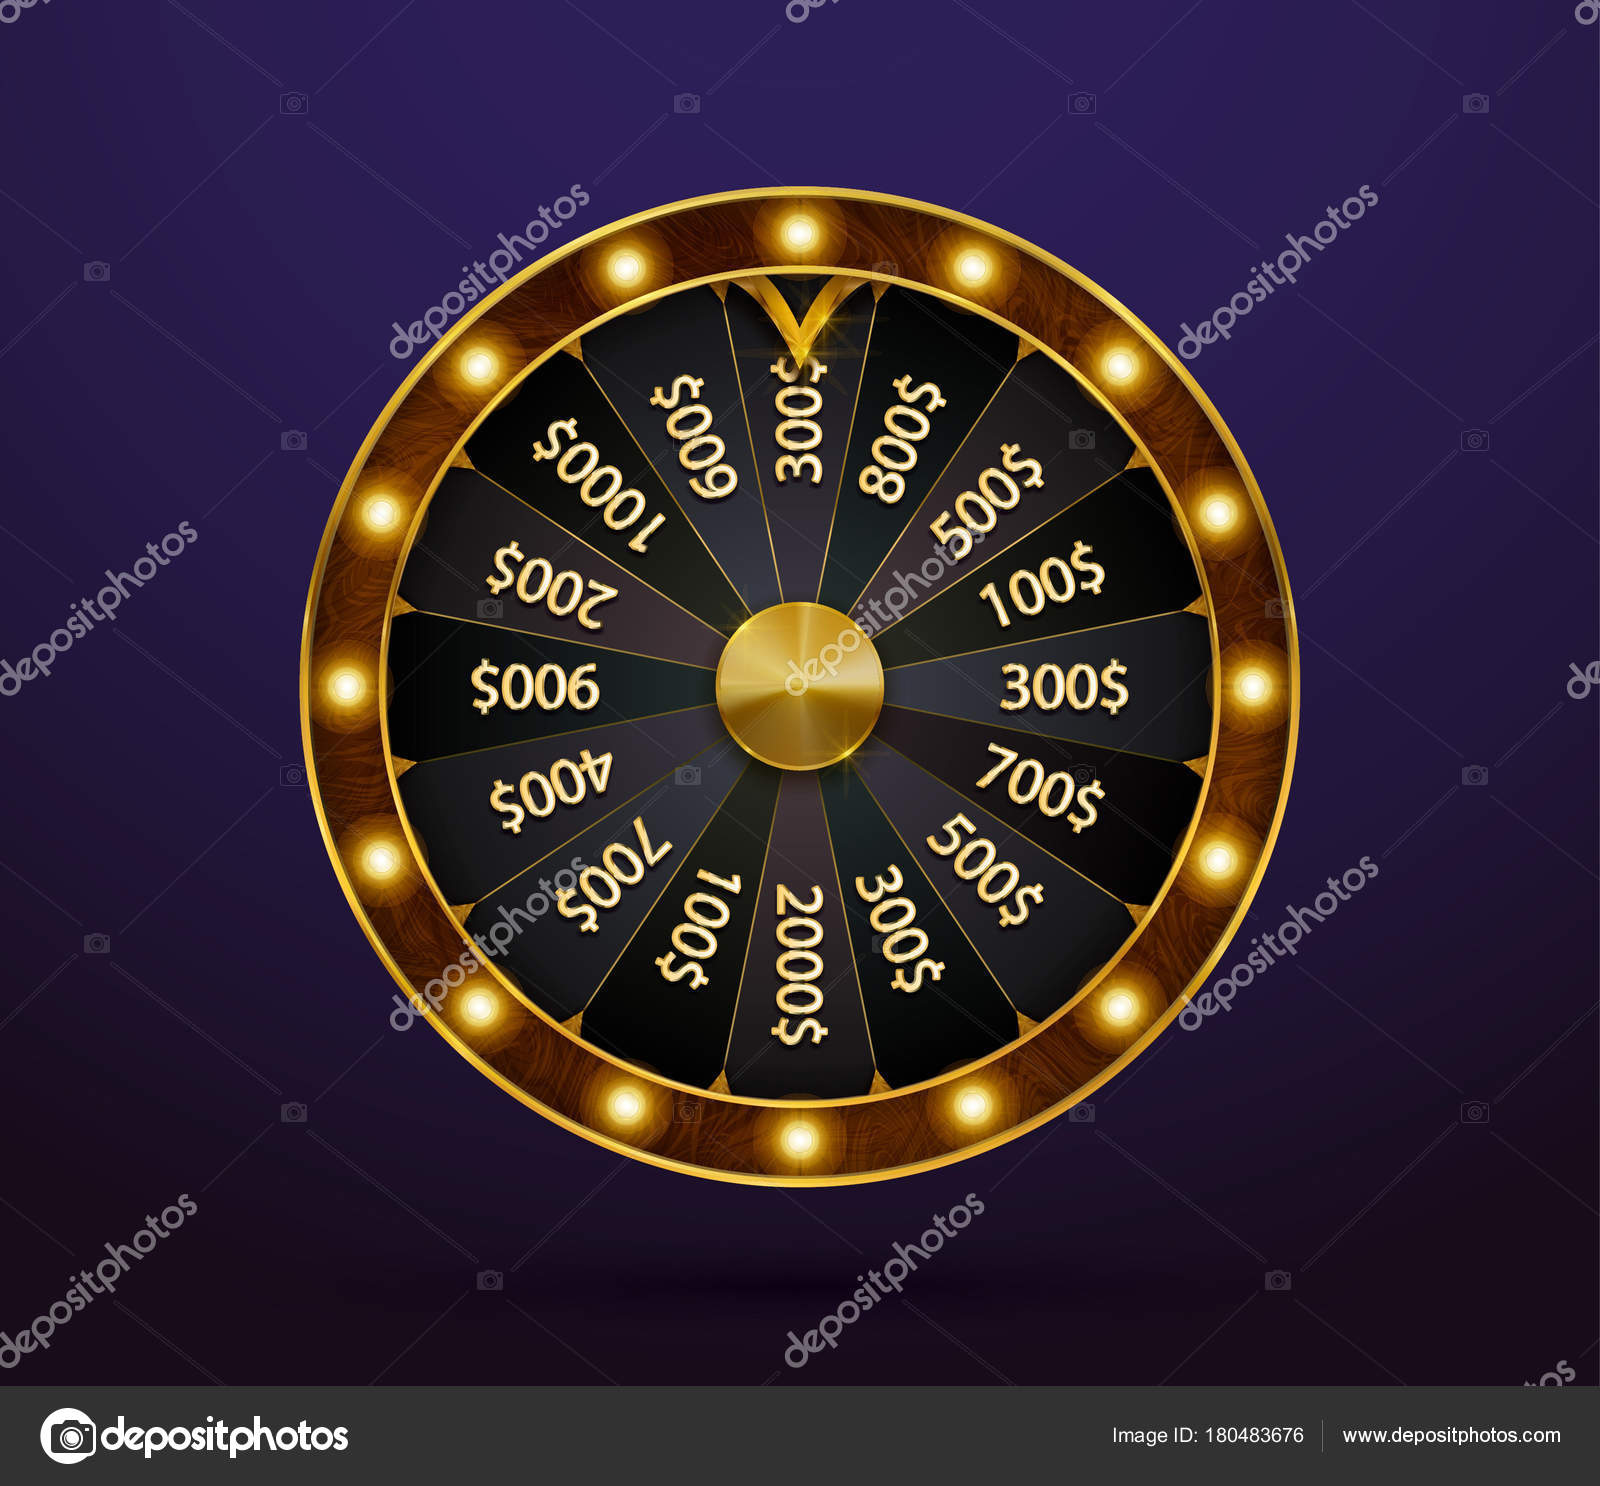 fortune wheel game spin realistic lucky spinning luxury gold roulette stock vector gluiki. Black Bedroom Furniture Sets. Home Design Ideas